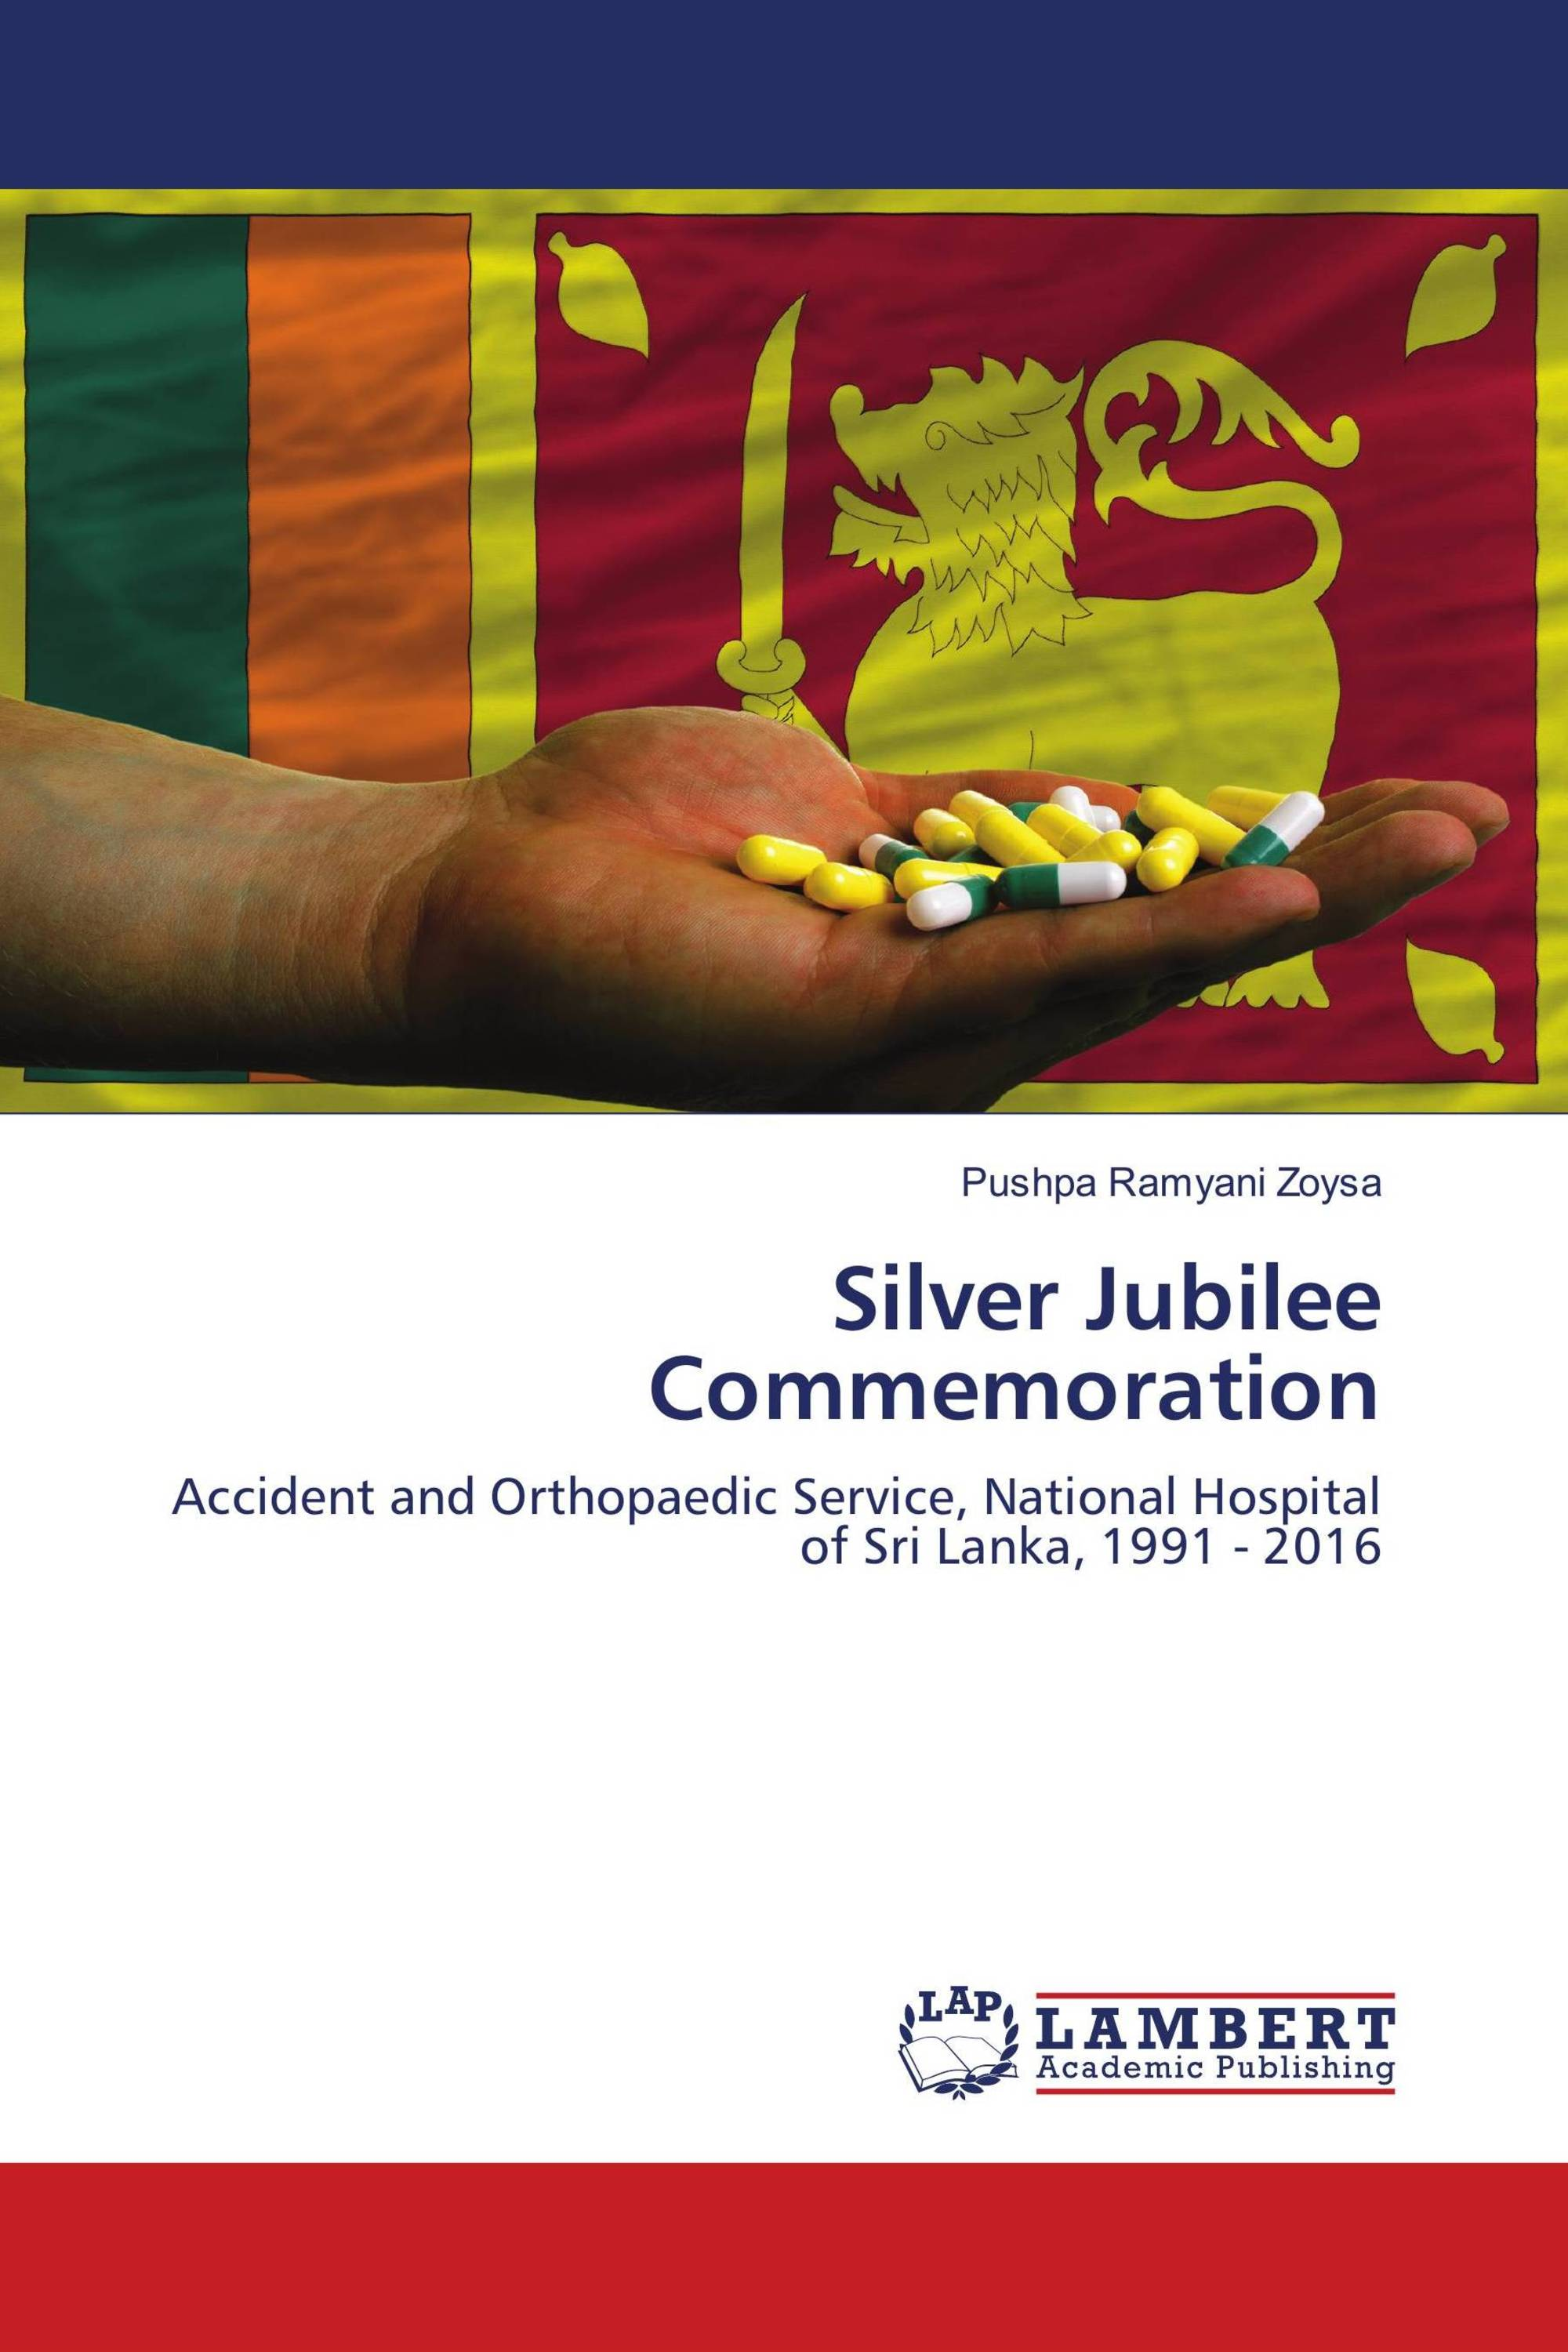 Silver Jubilee Commemoration